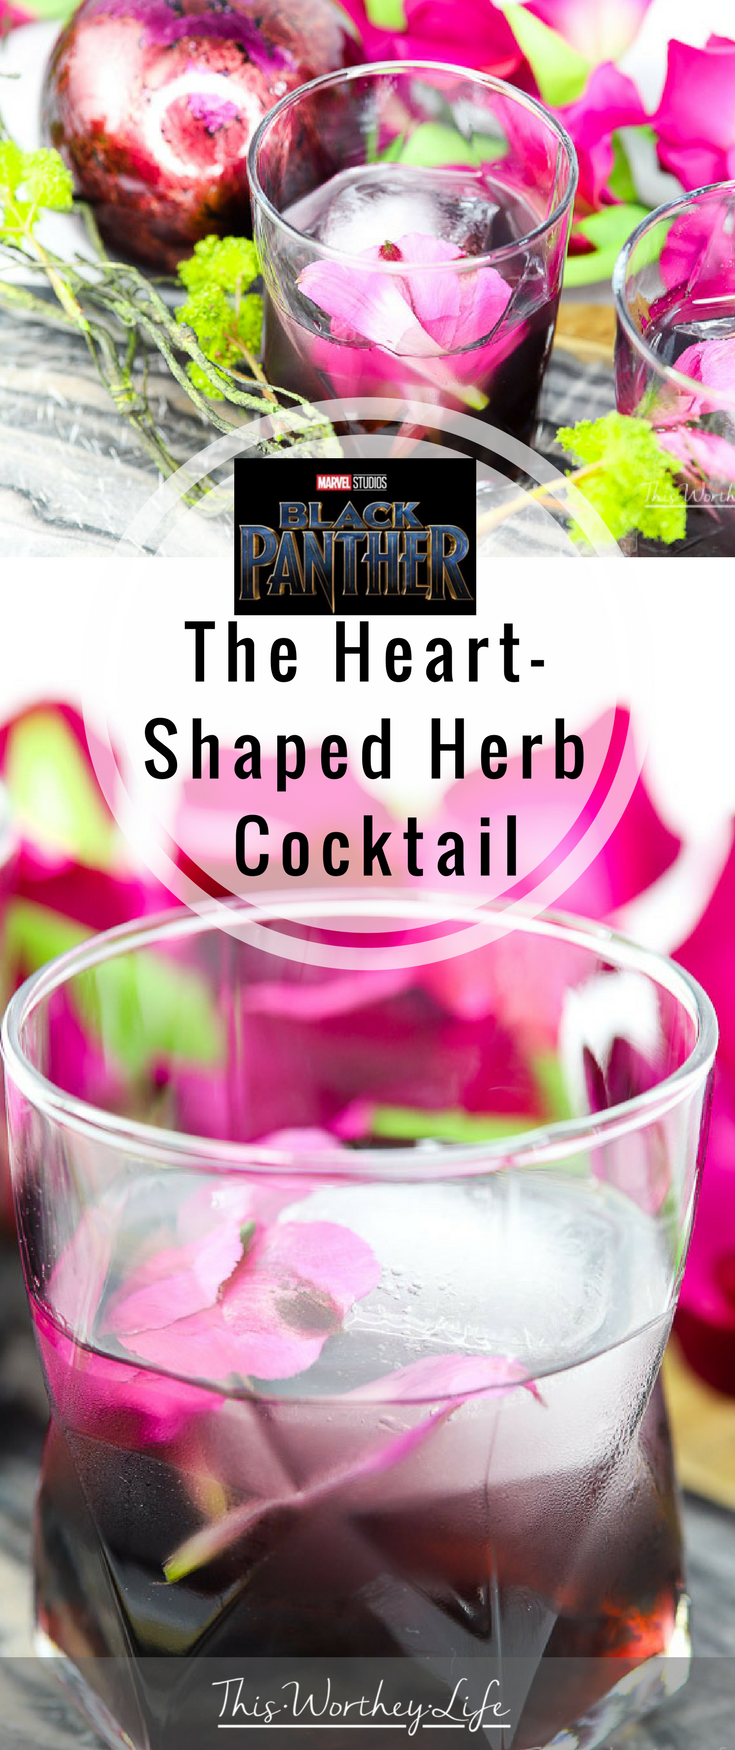 Marvel's Black Panther movie is out. We're sharing this Black Panther cocktail inspired by the heart-shaped herb a warrior would drink to become the Black Panther. I imagine, if you drink this heart-shaped cocktail, you just may gain some powers of your own!